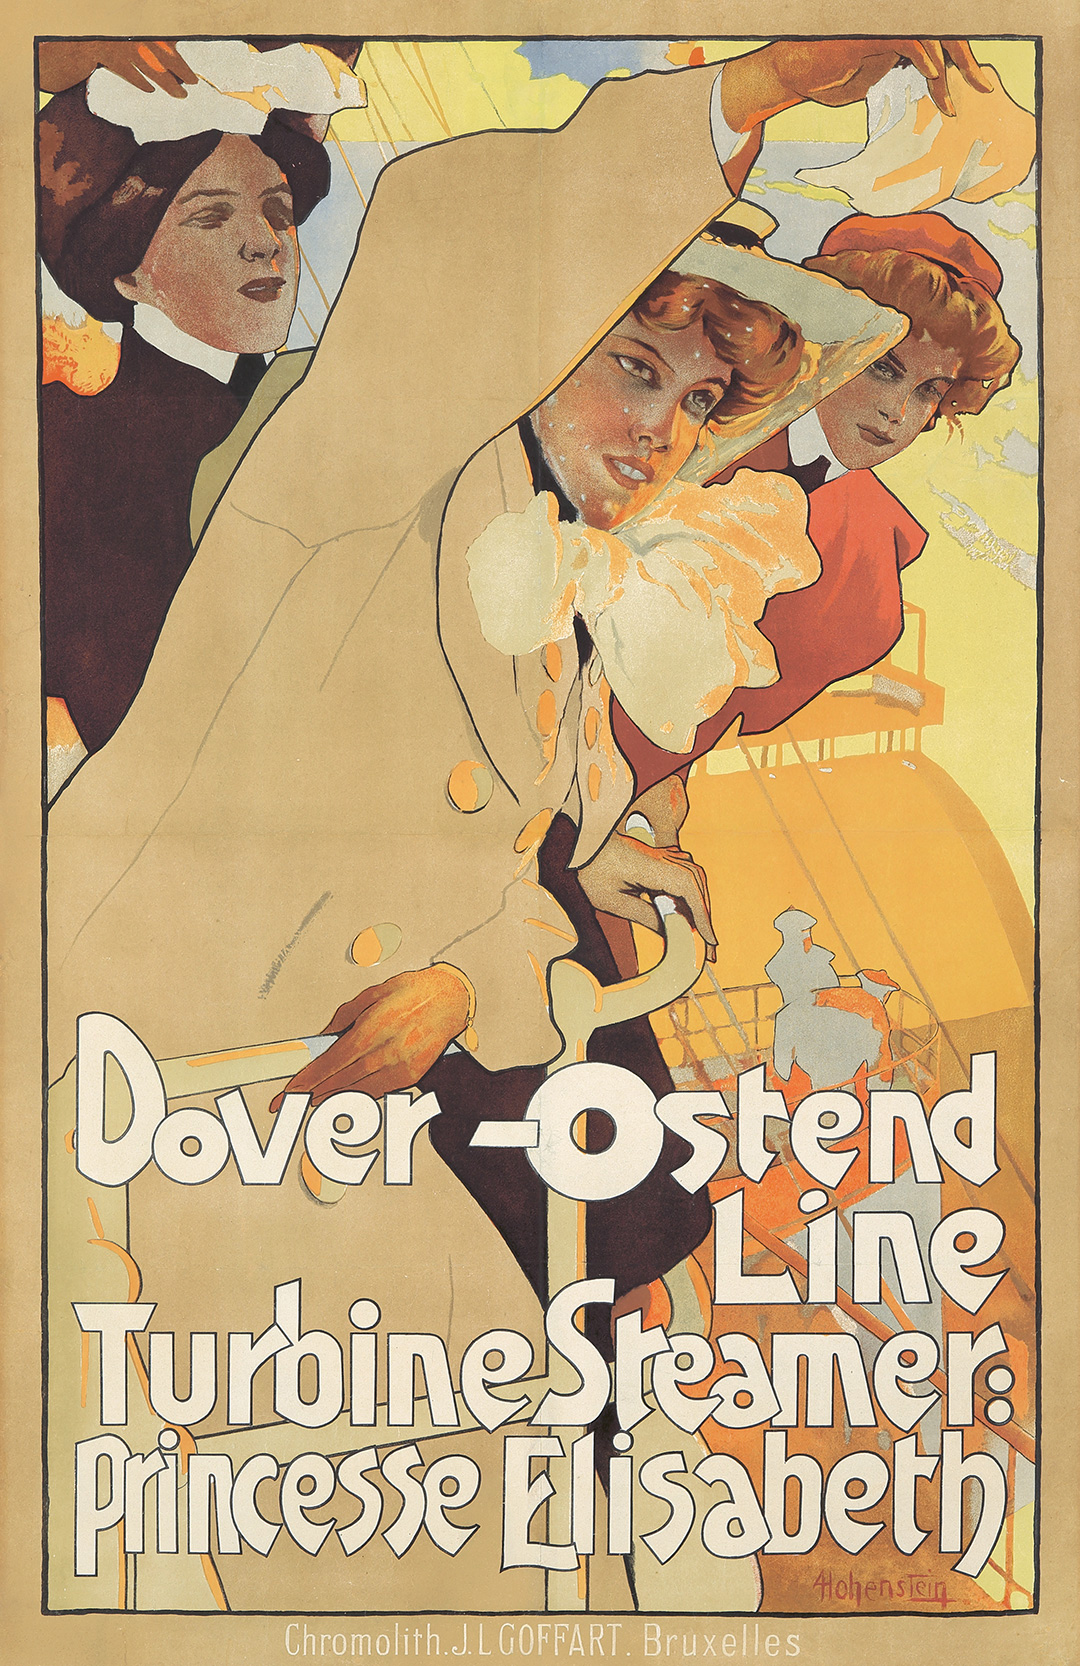 304. Dover-Ostend Line. ca. 1907.